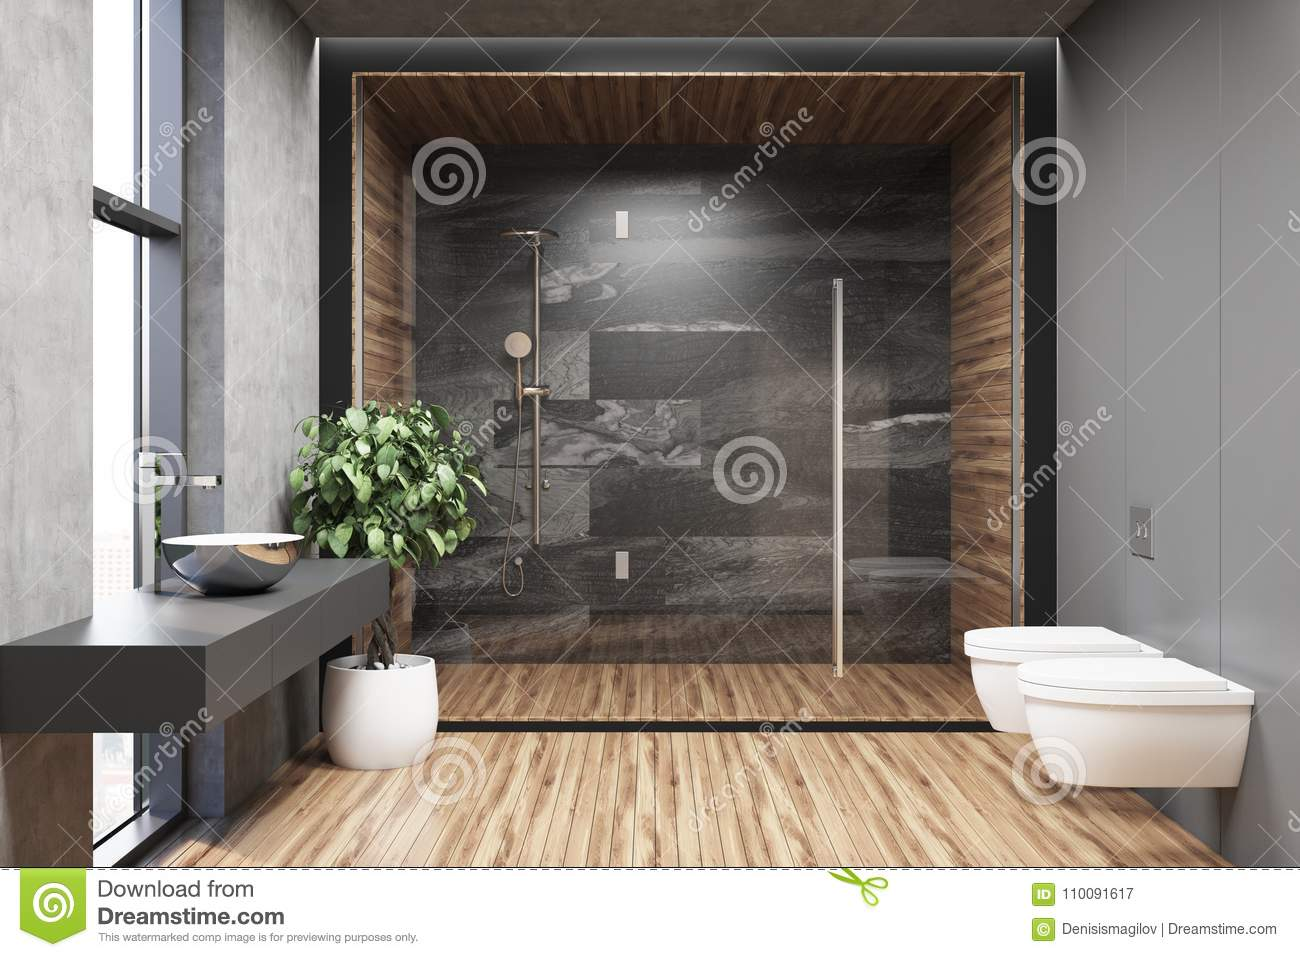 Interior Of A Gray Bathroom With Wood Floor Stock Illustration Illustration Of Empty Furniture 110091617